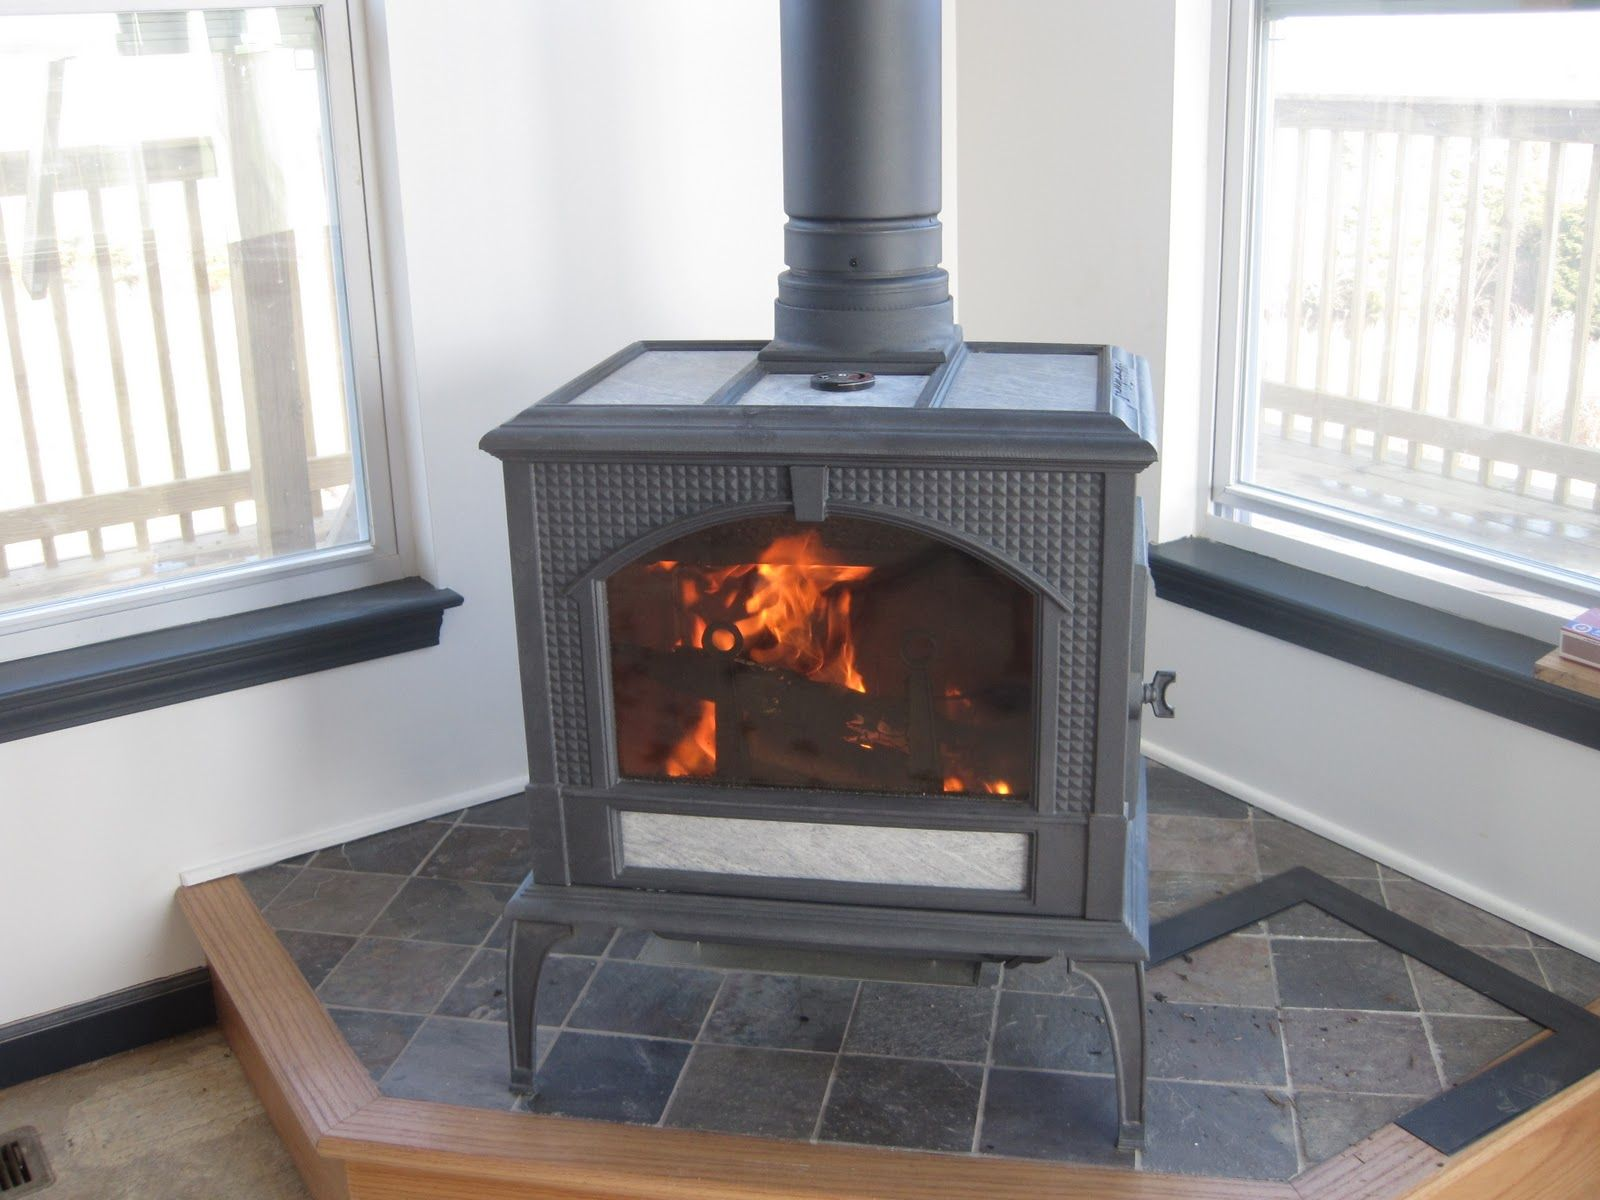 8 best stove platform ideas images on pinterest wood stoves